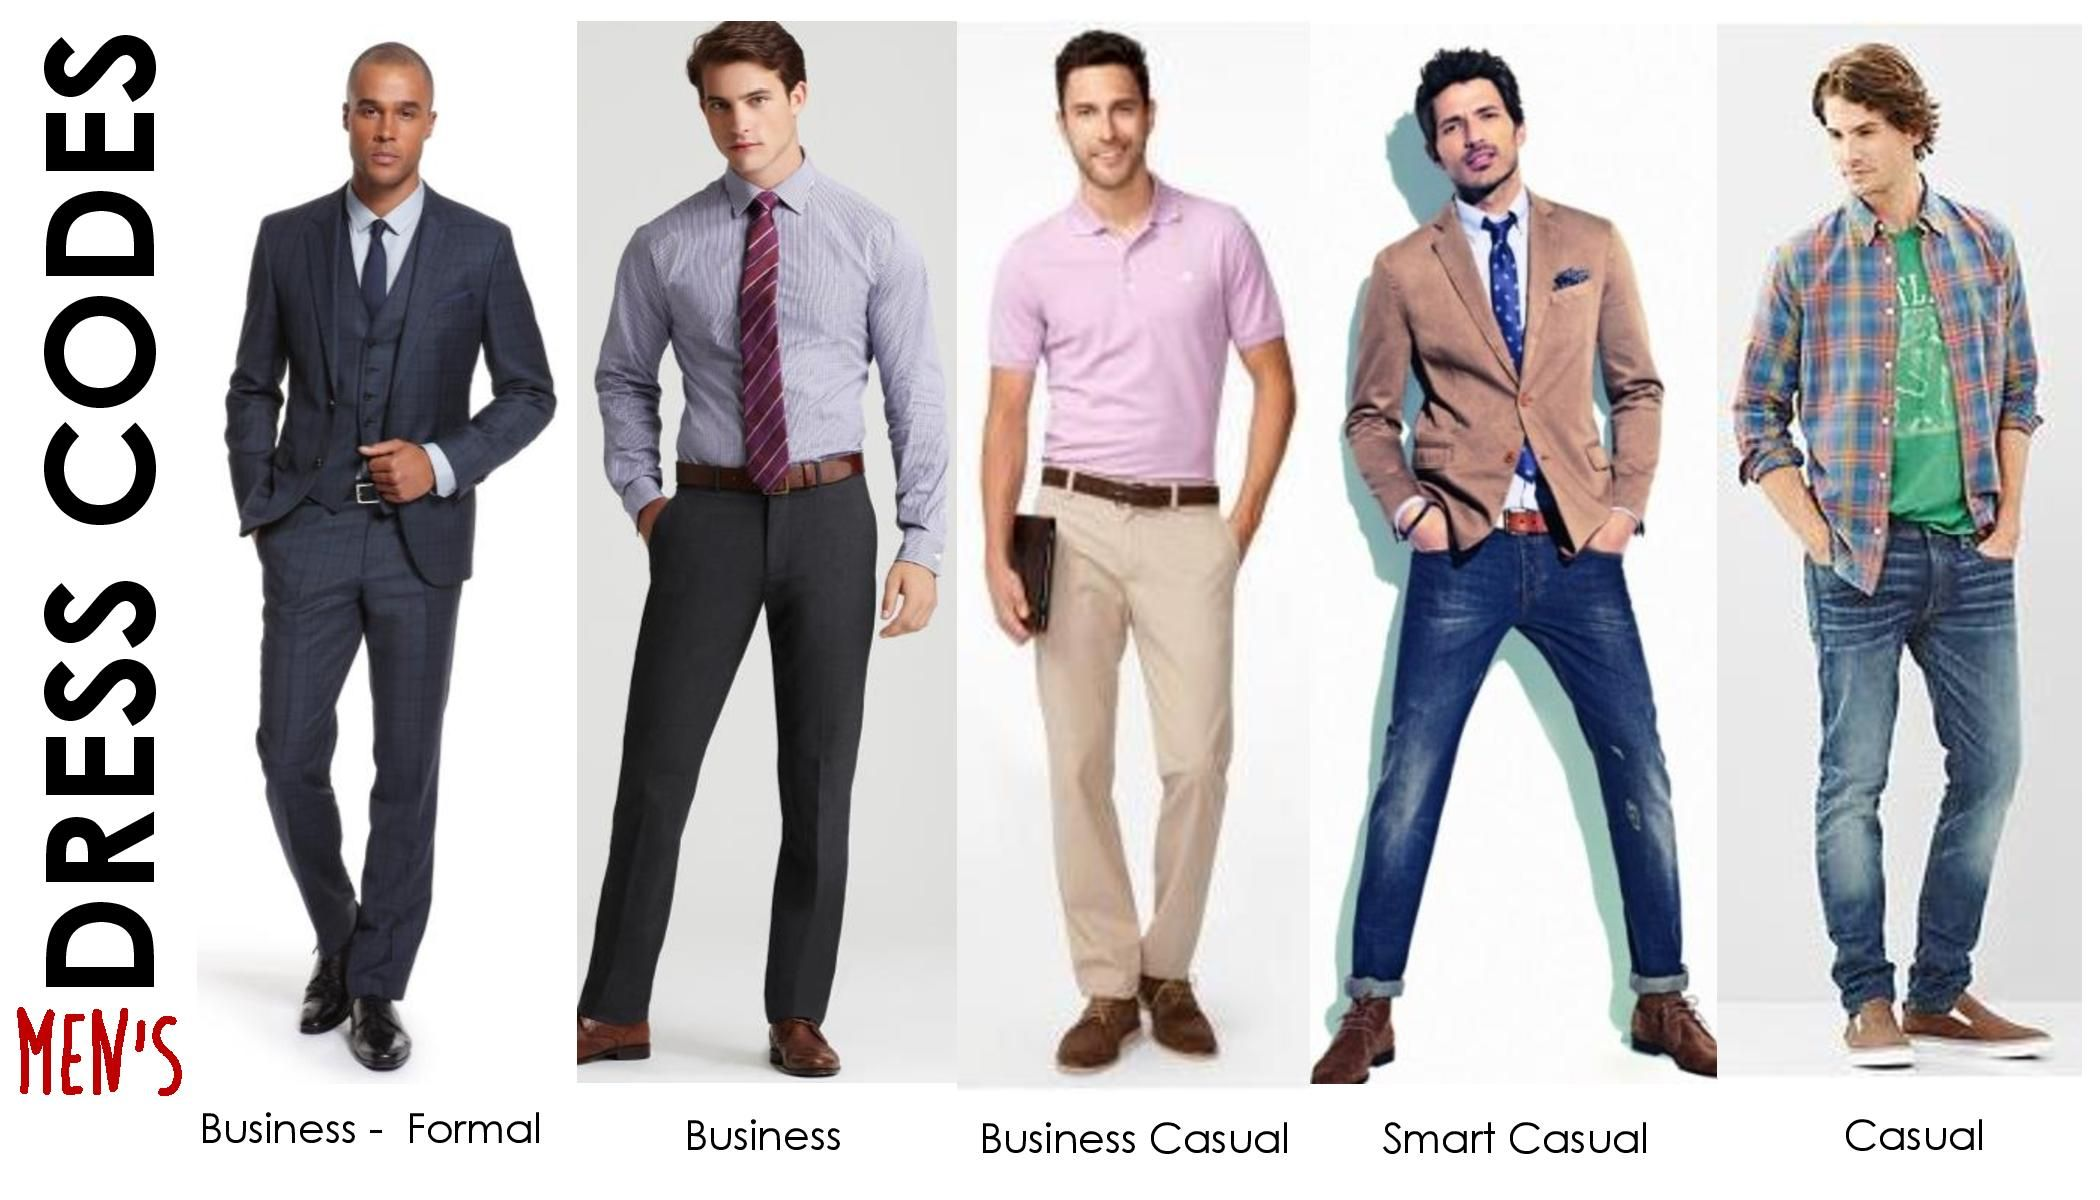 17 best images about career style business 17 best images about career style business professional attire casual attire and interview